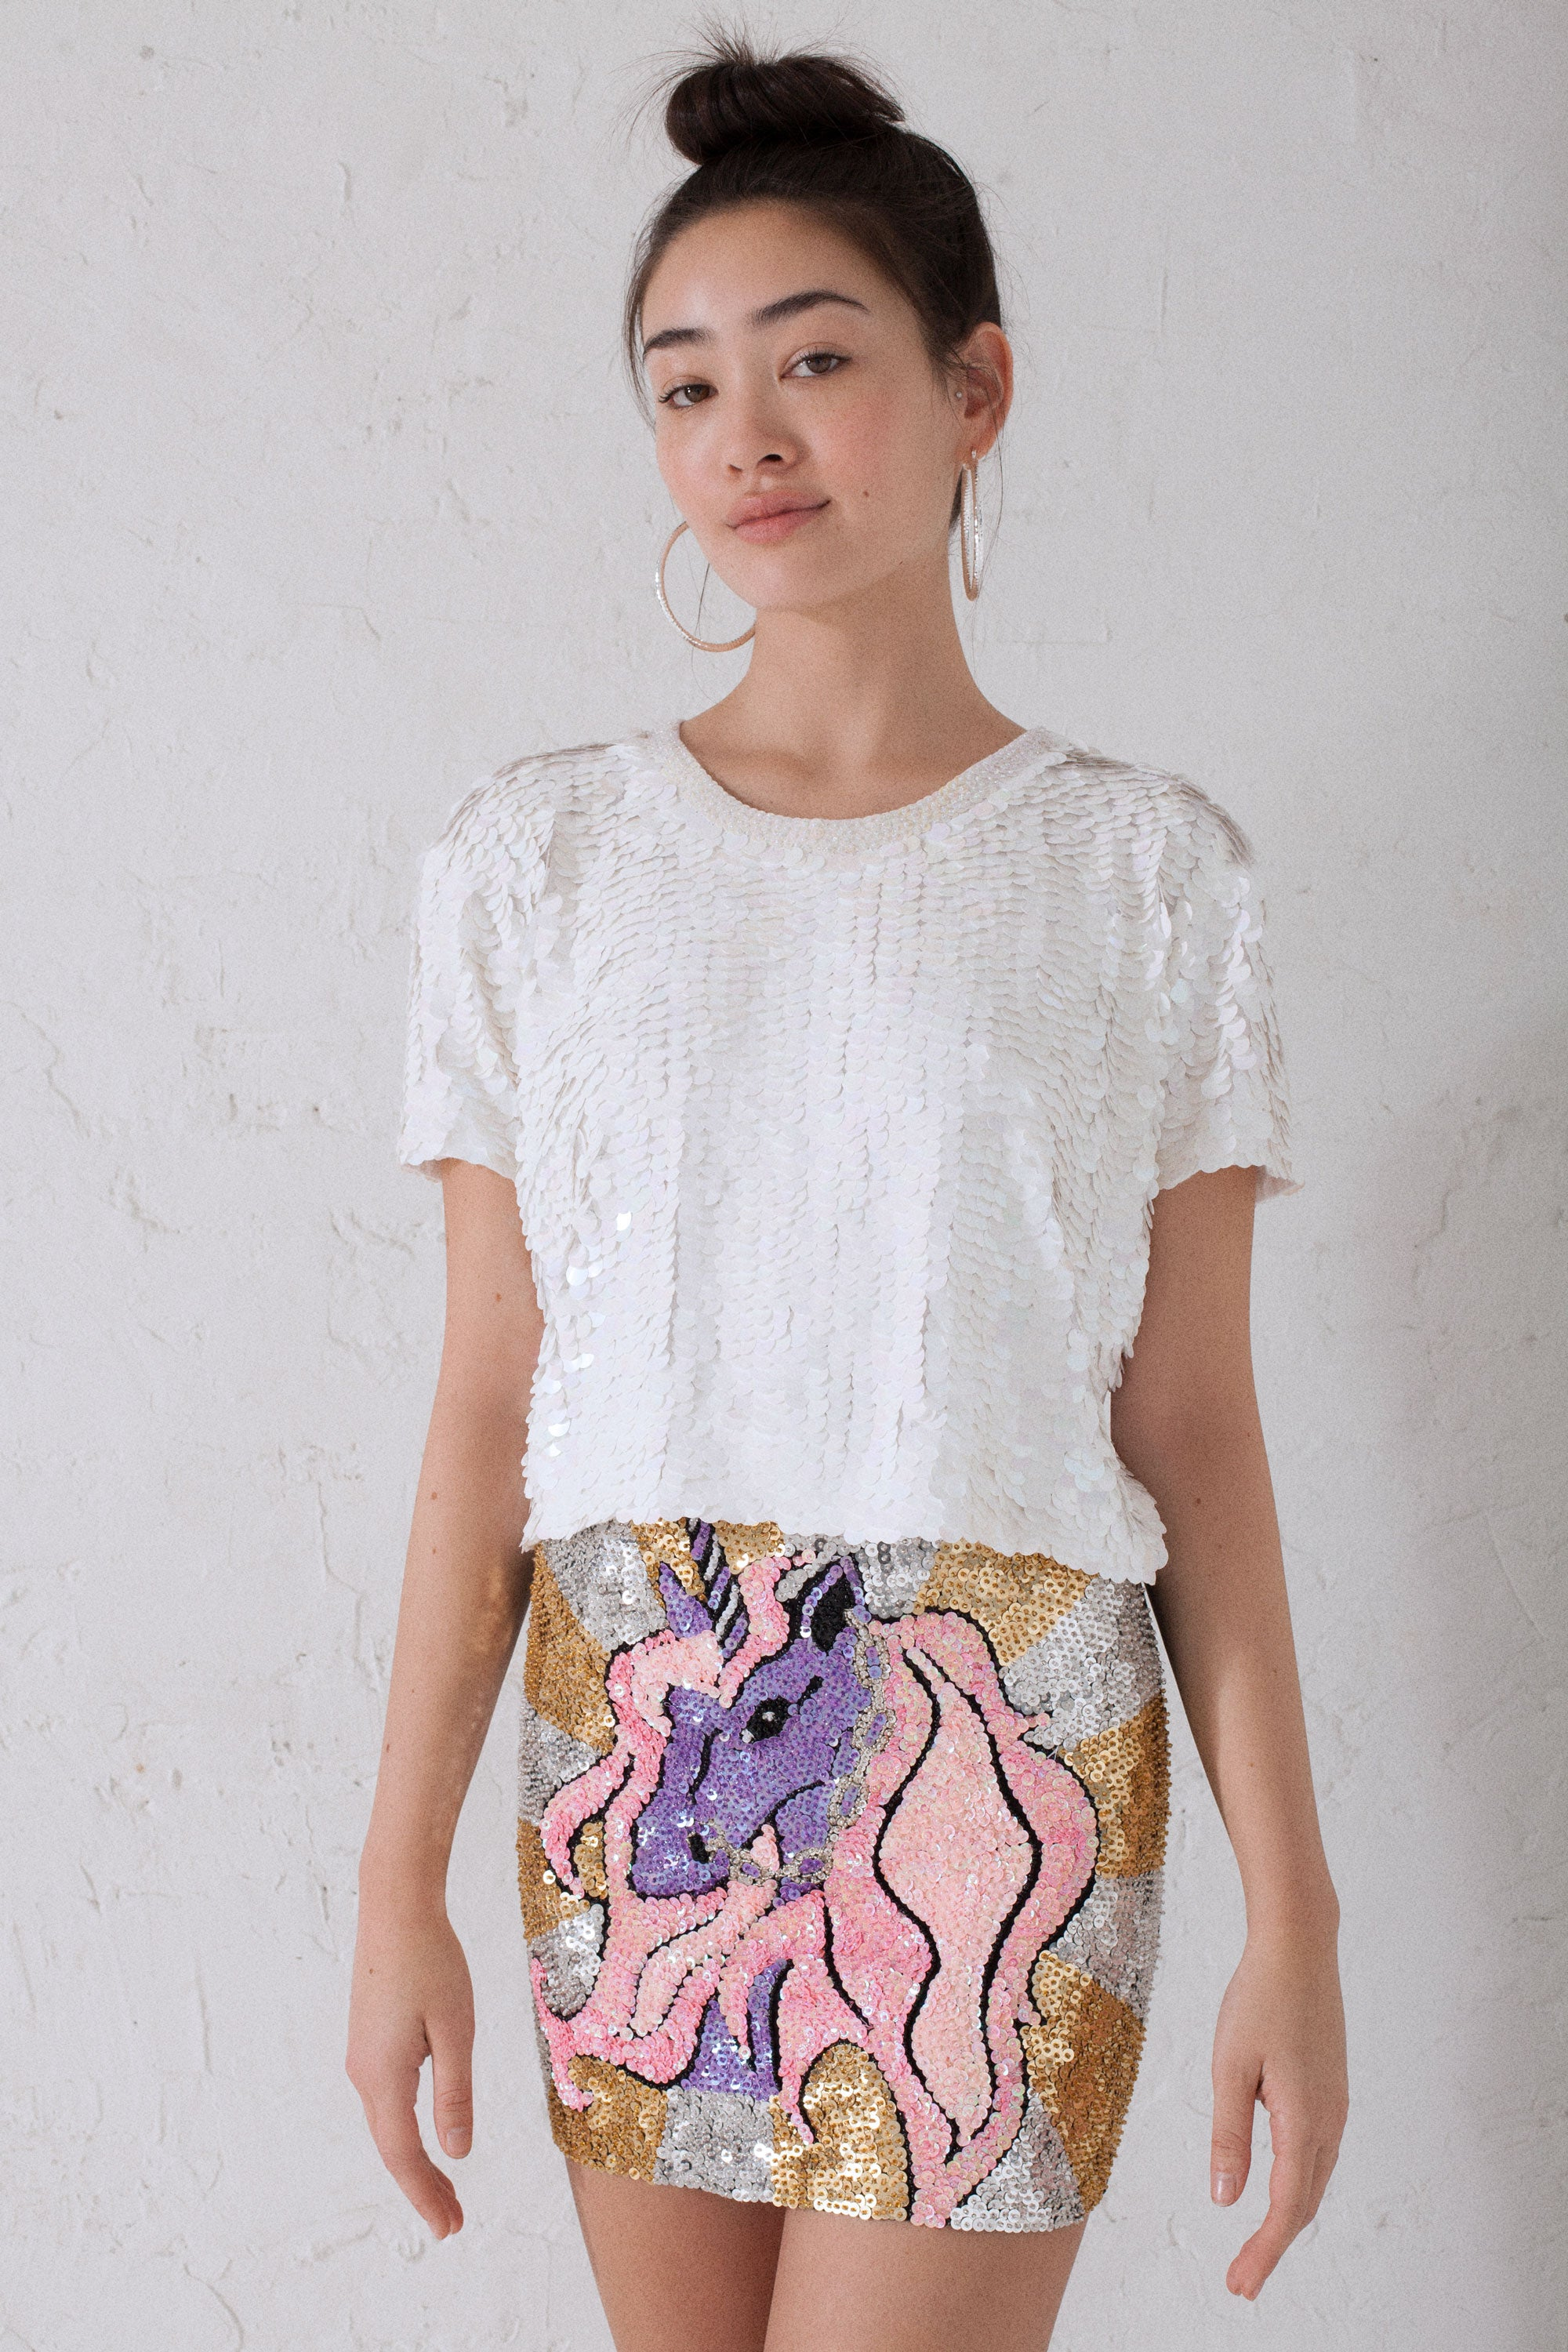 The Lola Tee in Iridescent White